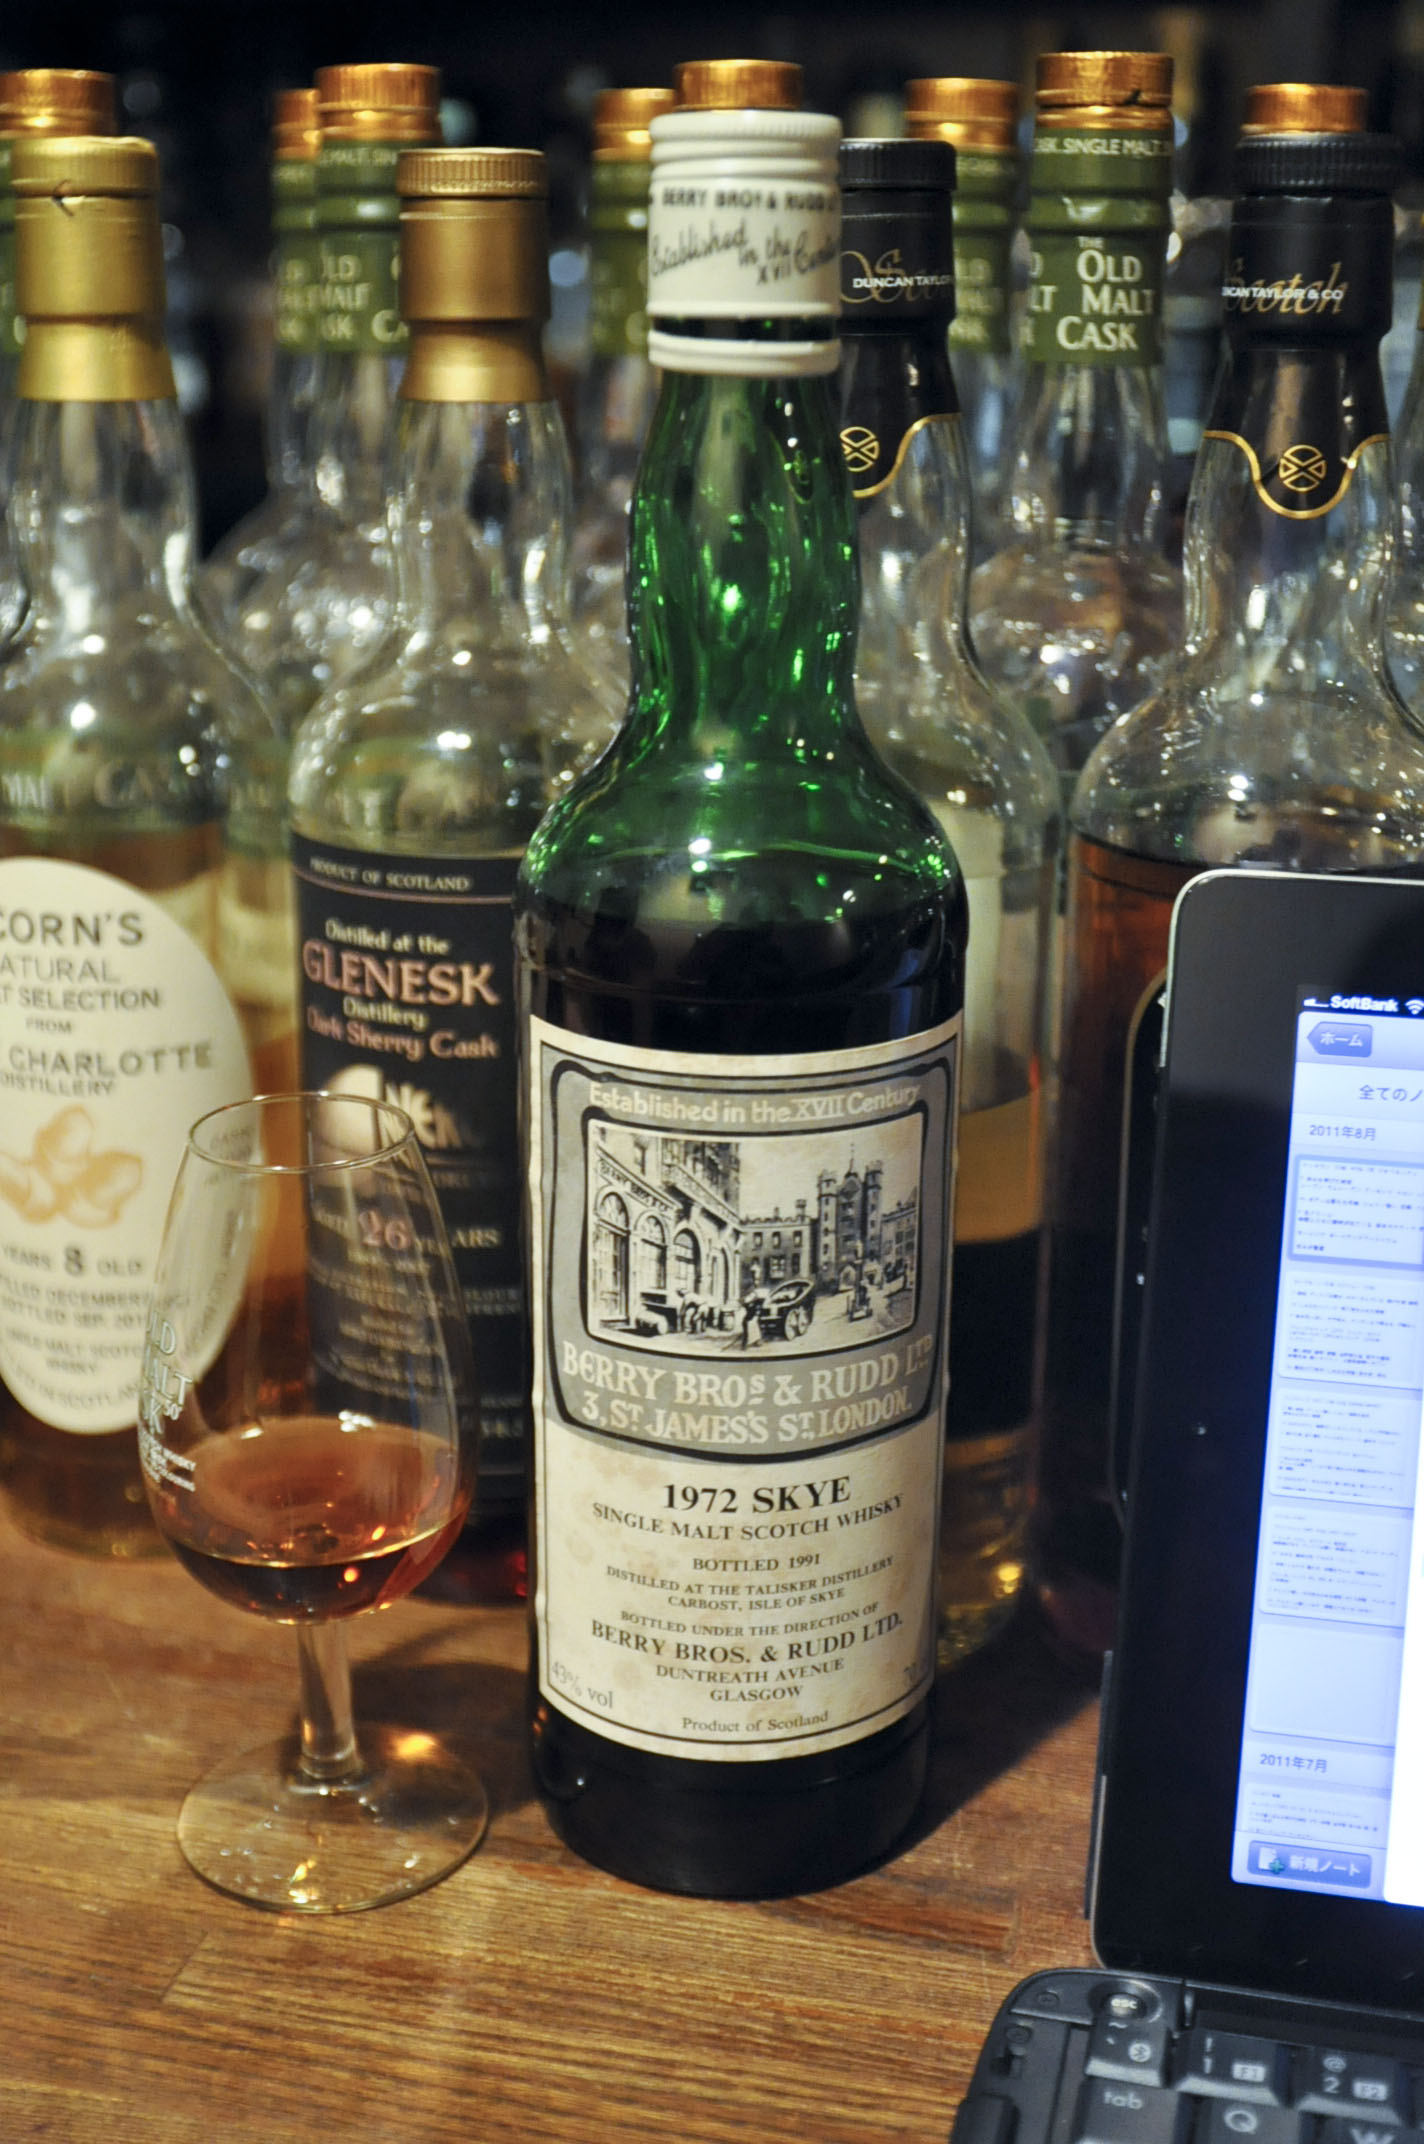 タリスカー Talisker 1972/1991 (43%, Berry Bros & Rudd, '1972 Skye', White Screw Cap)